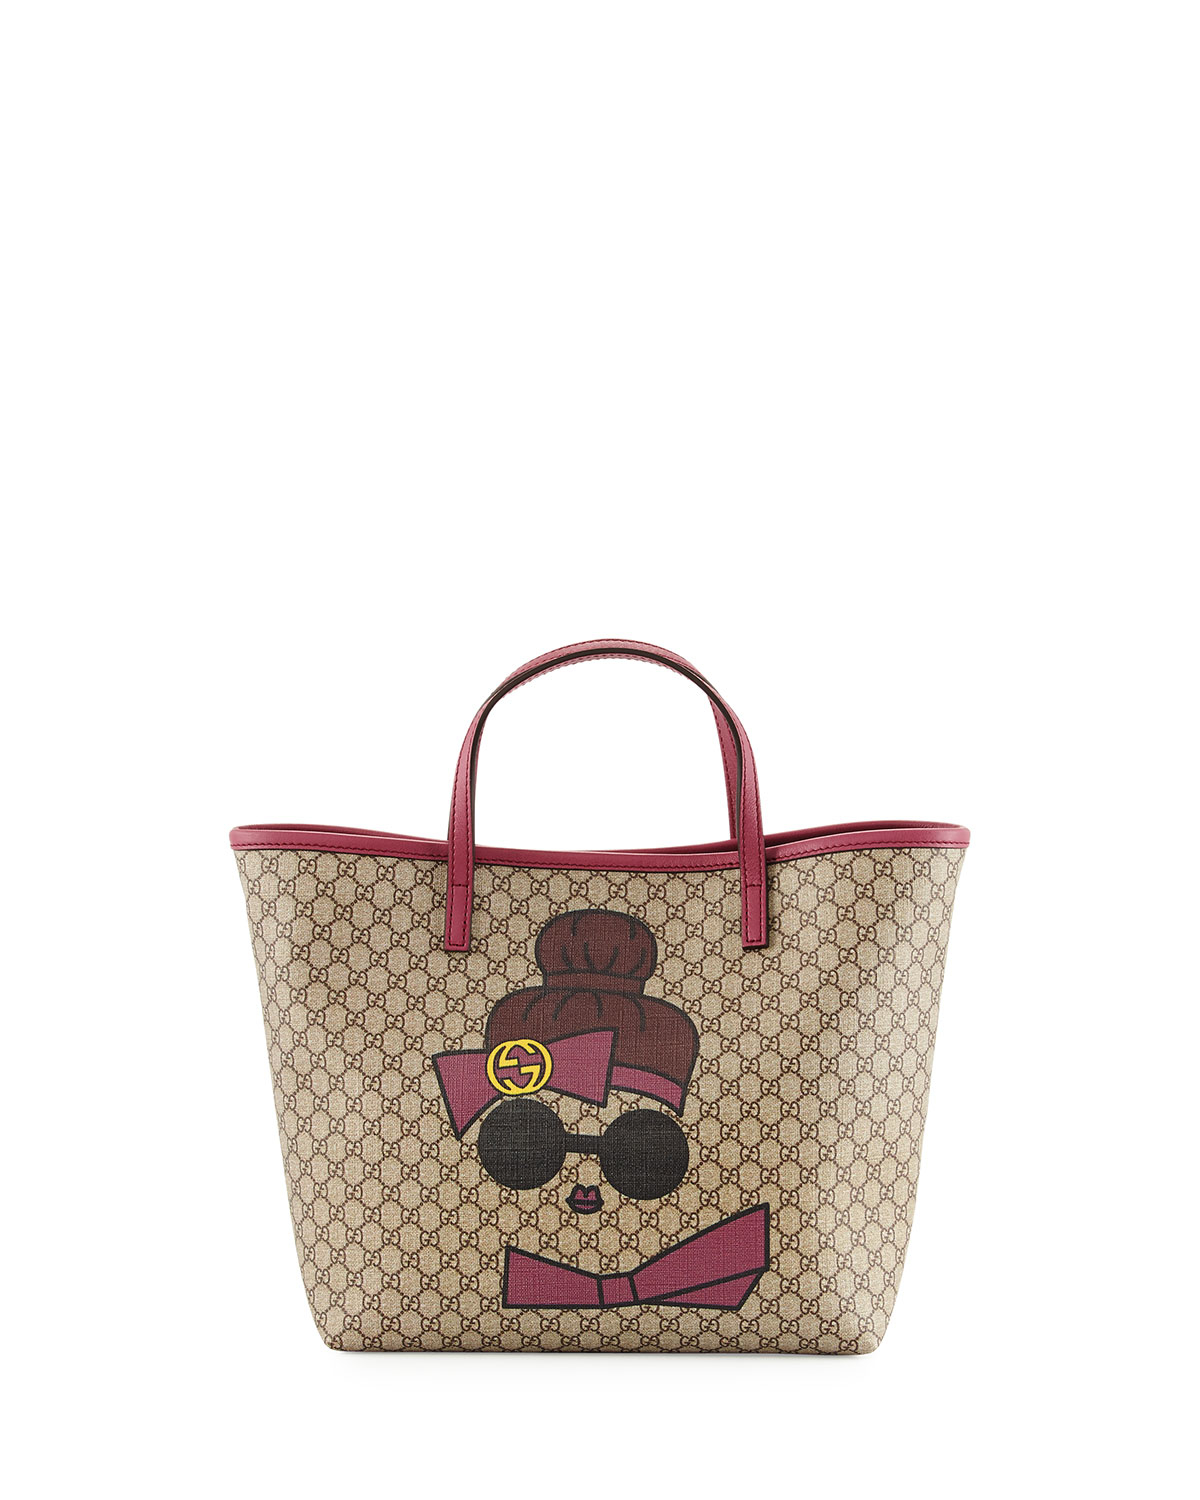 6a9198f08f04 Gucci Kid's Doll Print Gg Supreme Tote Bag in Natural - Lyst